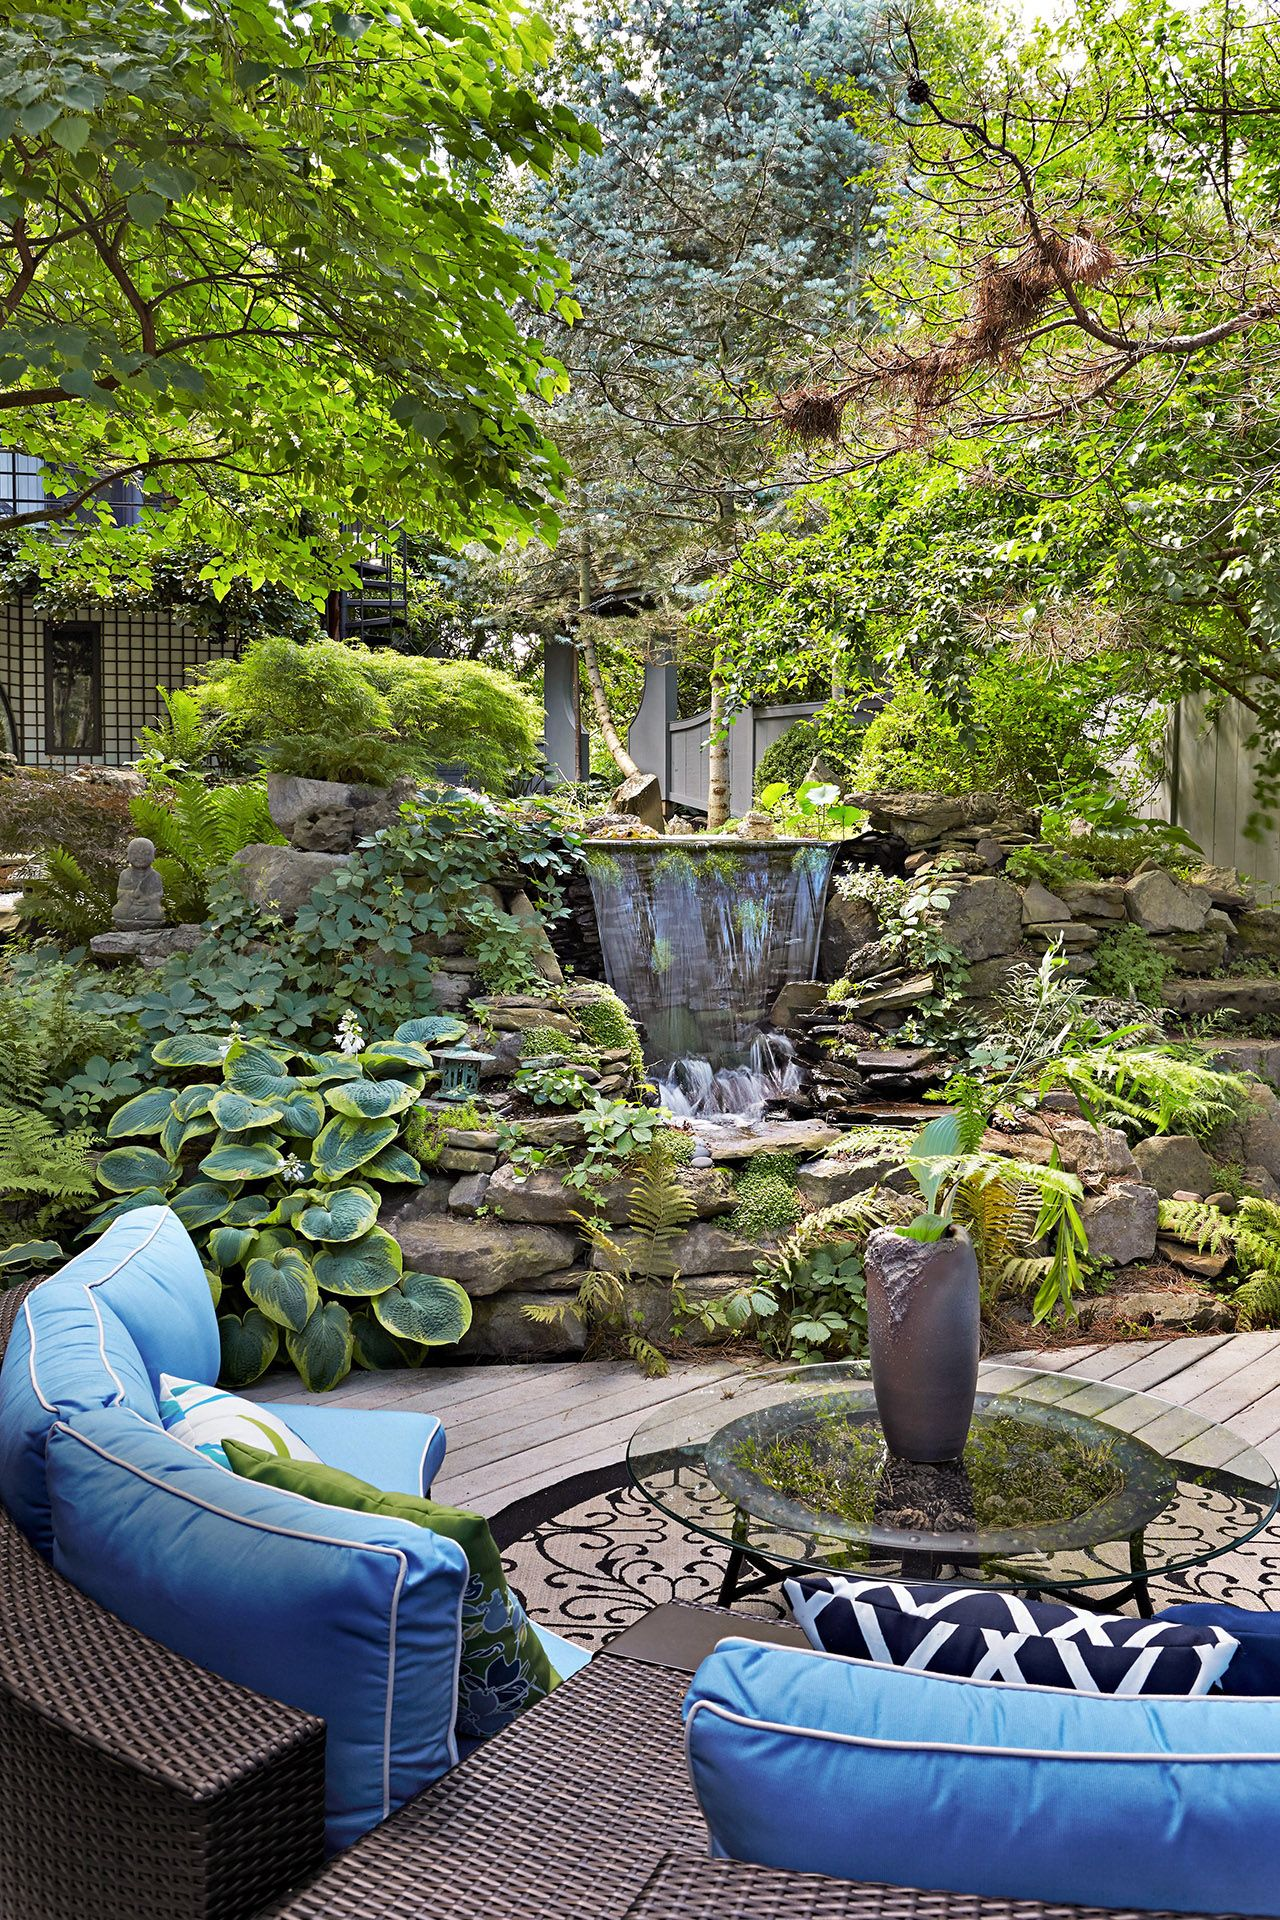 9d63d2815454d12b27858eef573e4940 - Better Homes And Gardens Step By Step Landscaping